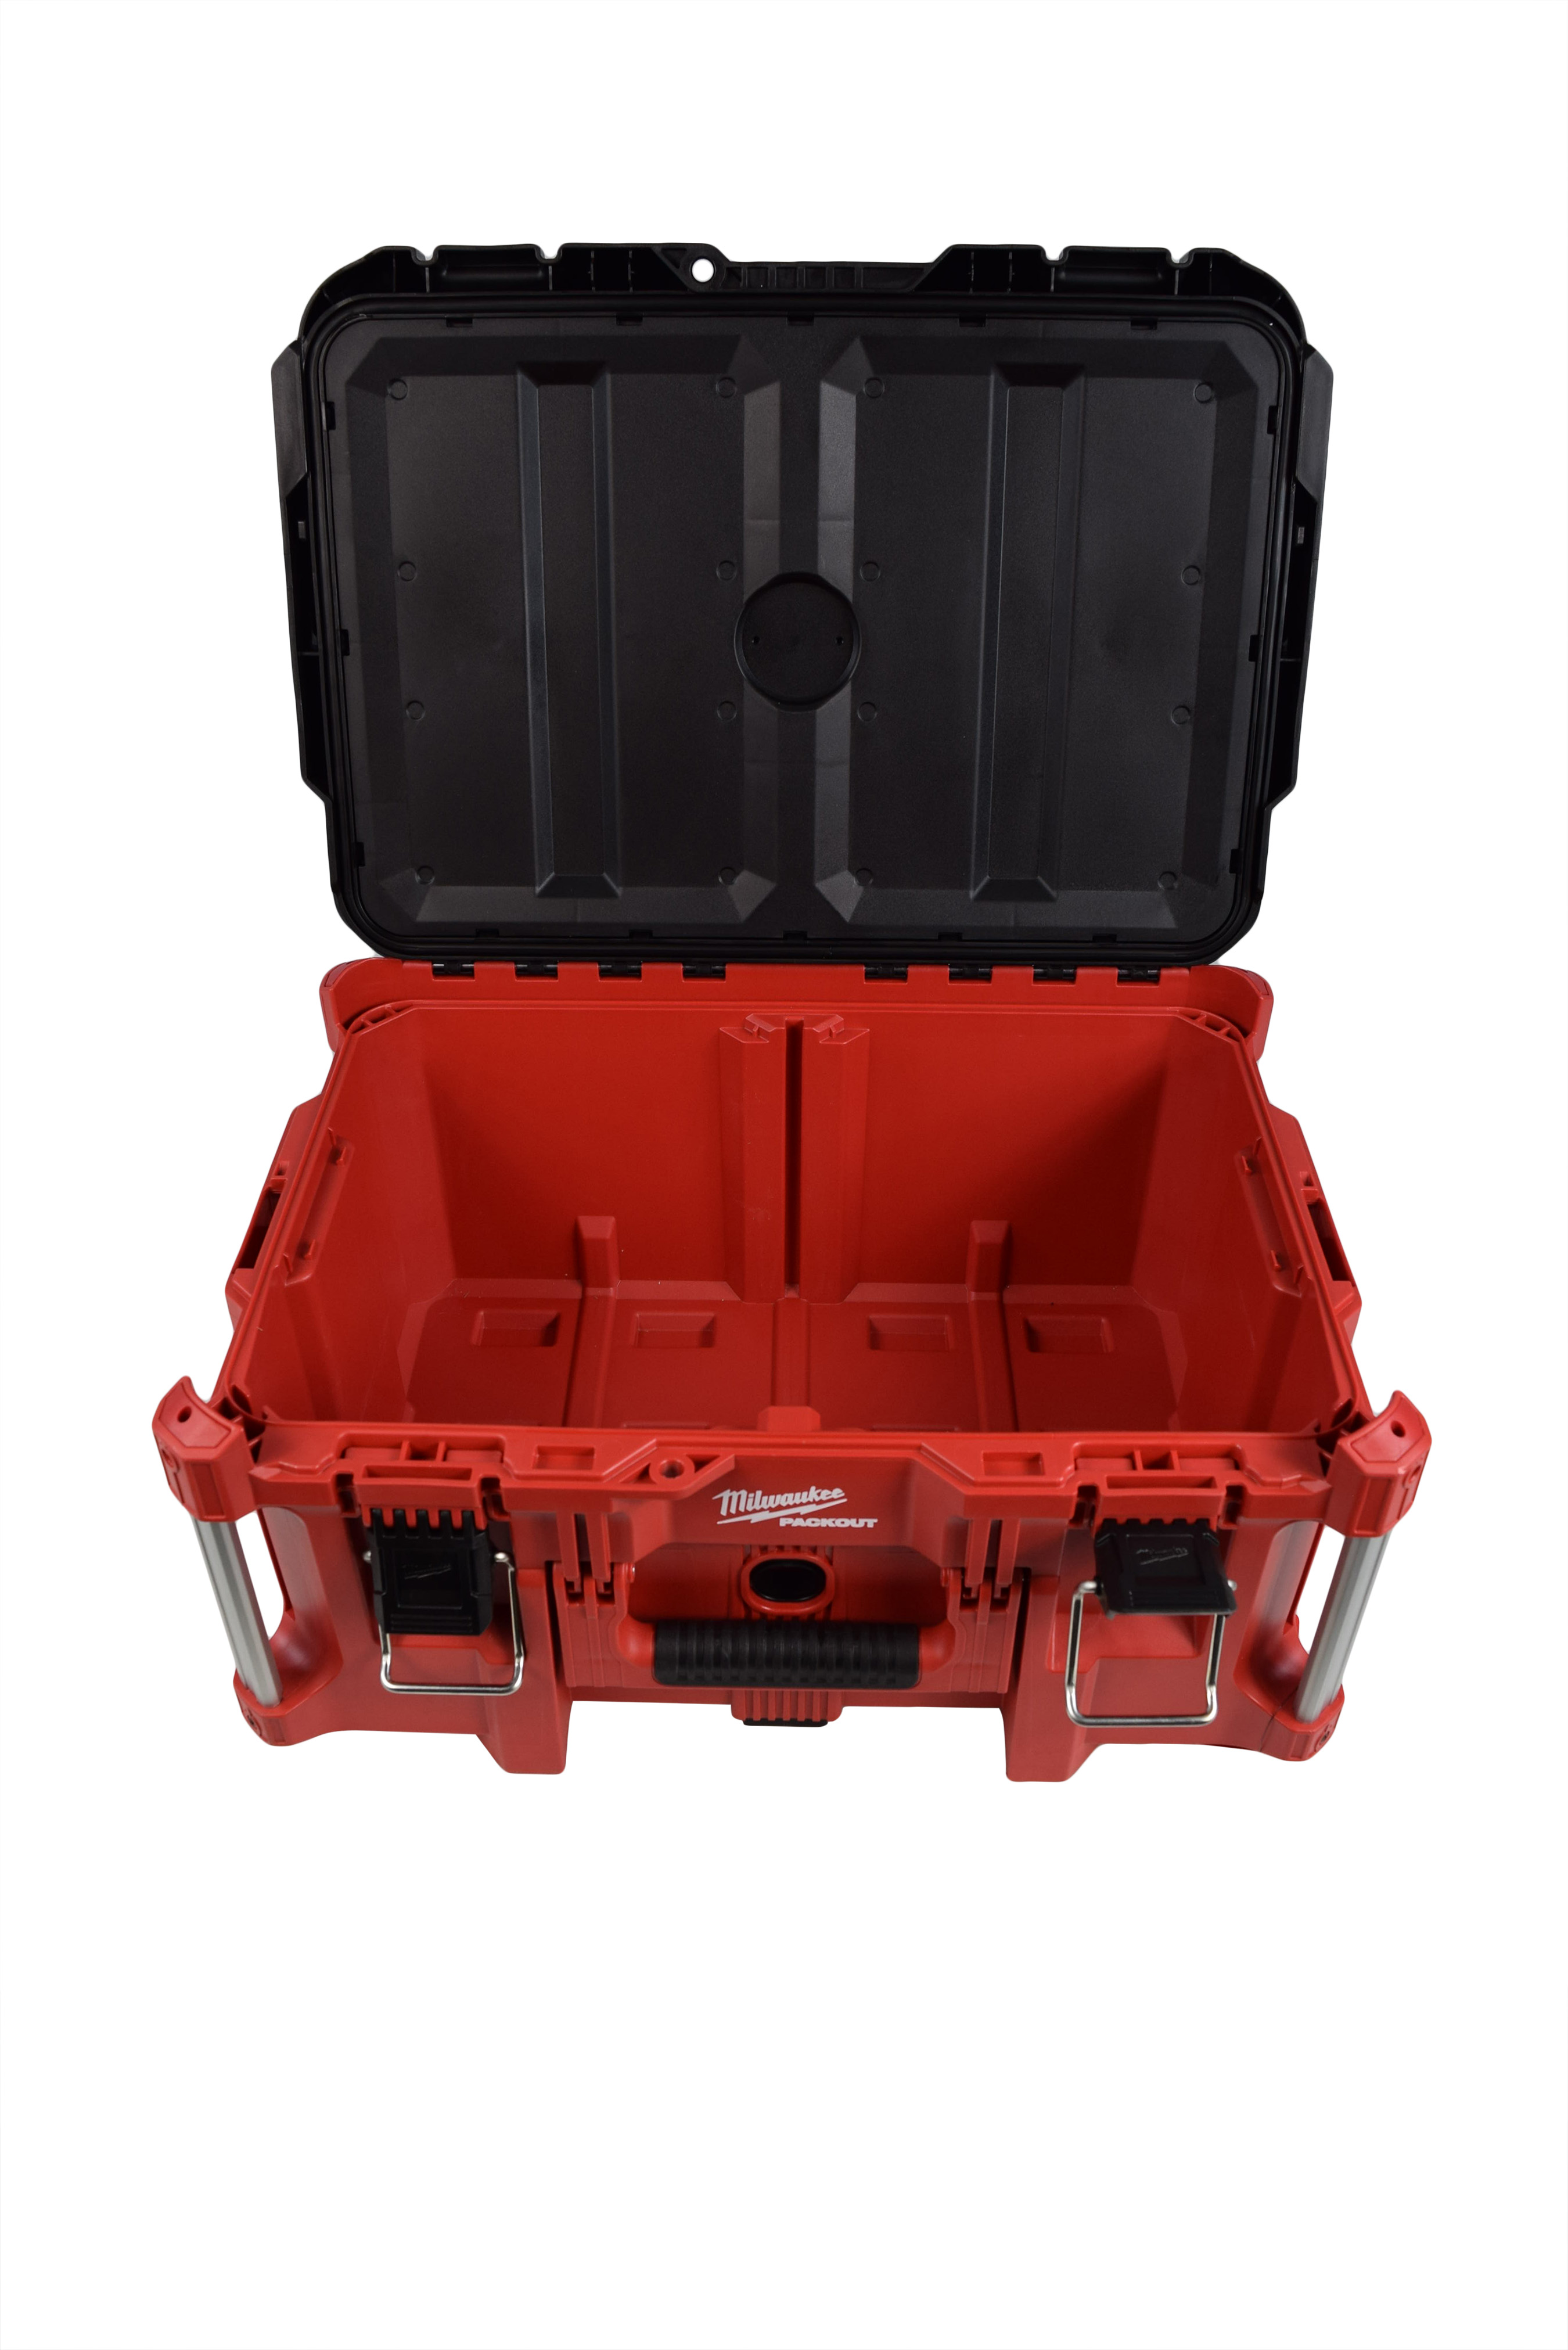 Milwaukee-48-22-8425-Packout-22-in.-Large-Tool-Box-Tool-Case-image-3